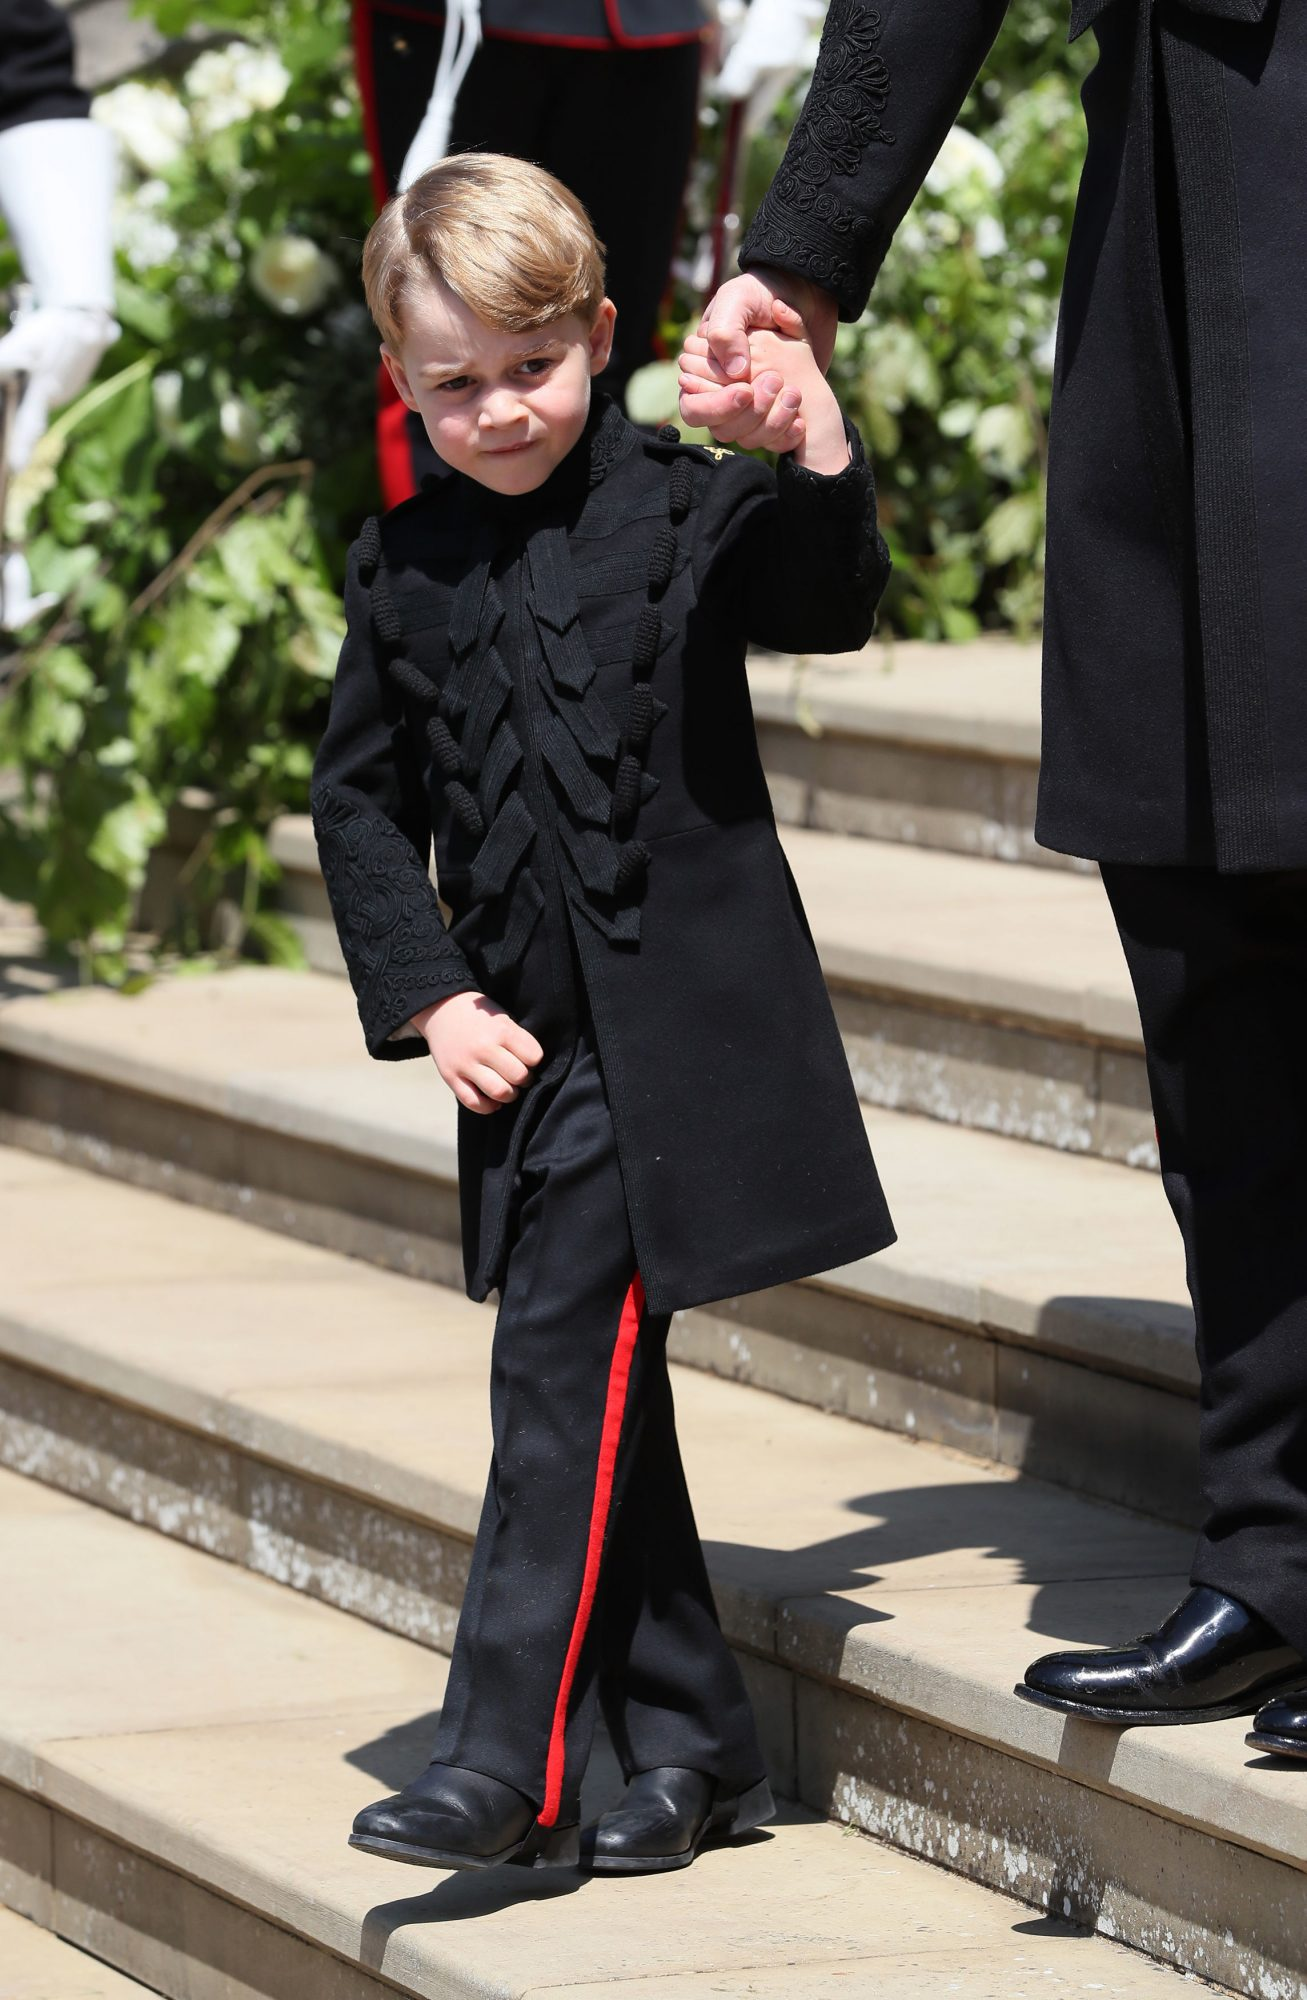 Prince George at Royal Wedding